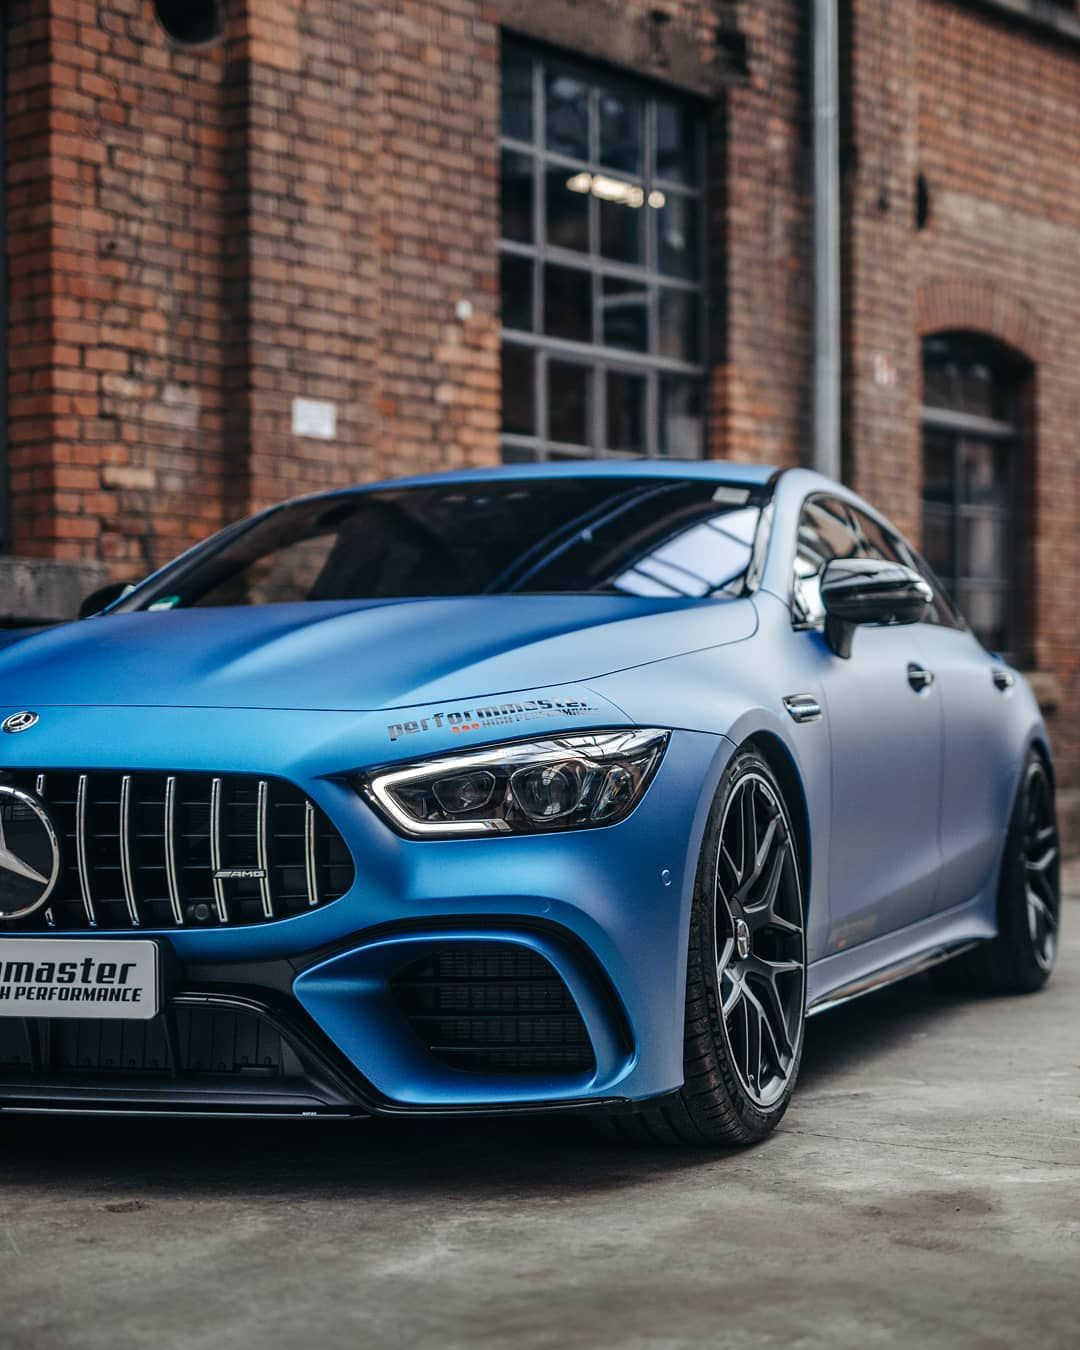 Mercedes Amg Gt 63 S 4matic 31 Limited Customer Edition With 740 Hp And 1 030 Nm Torque Mercedes Benz Cars Mercedes Benz Coupe Mercedes Benz Amg